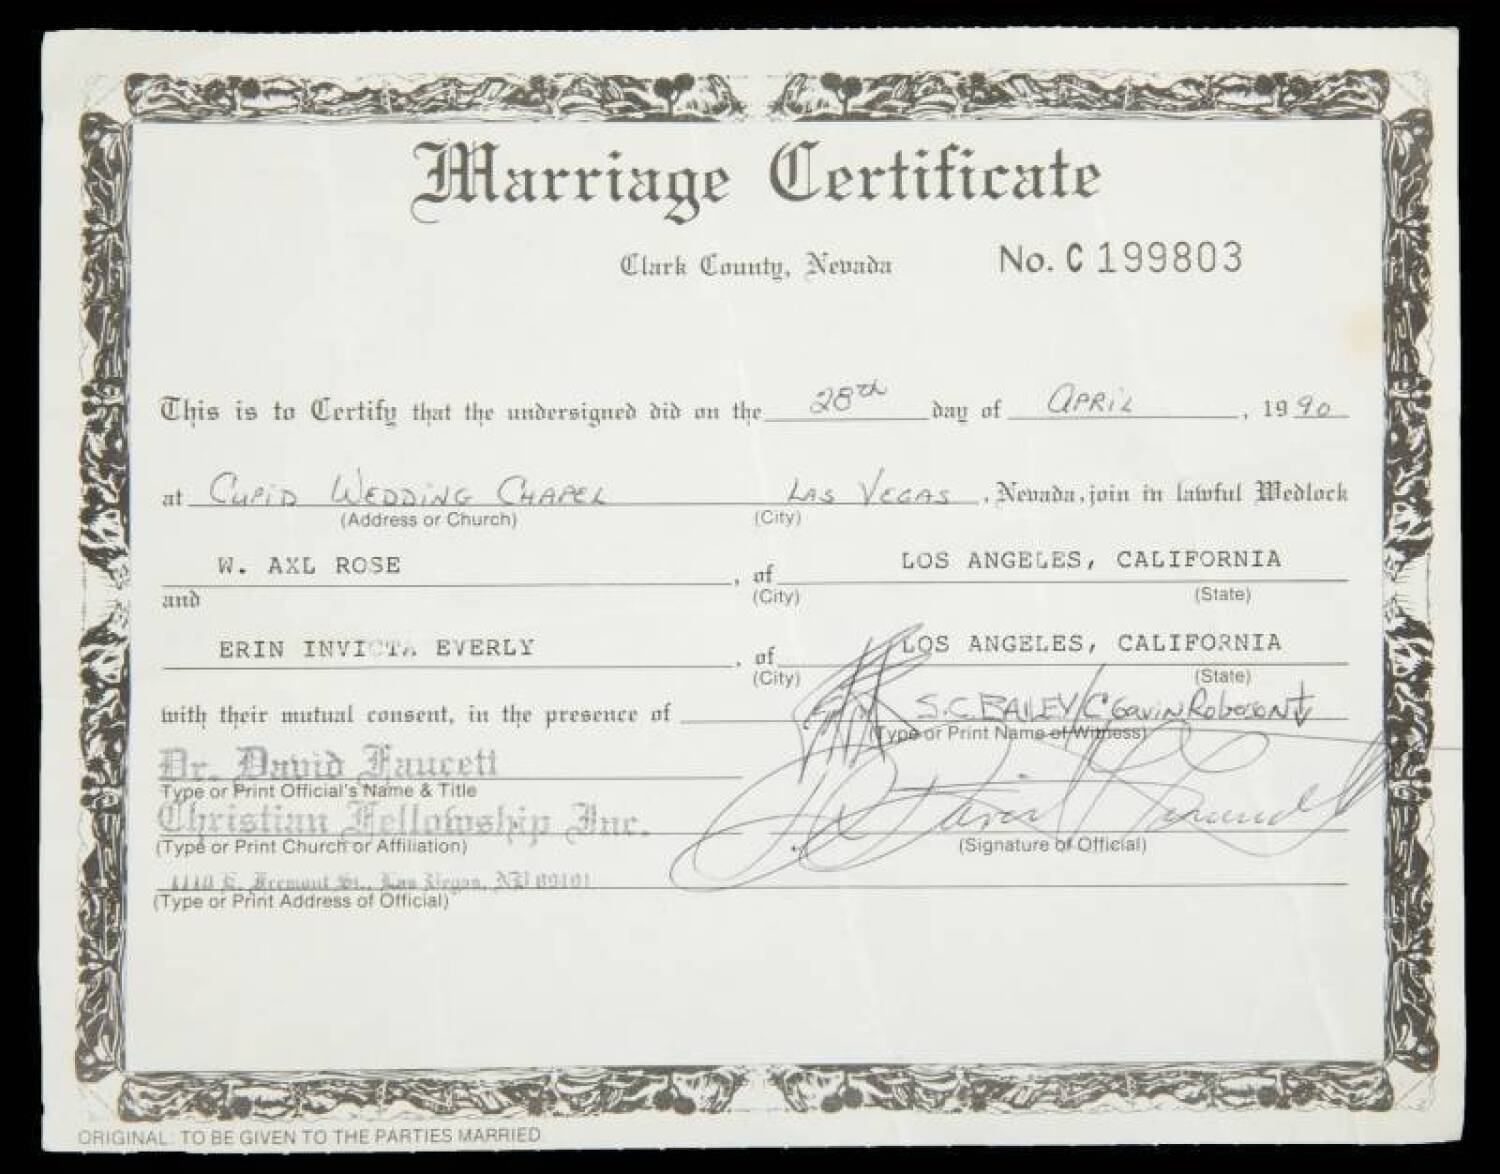 Axl Rose And Erin Everly Marriage Certificate Current Price 3500